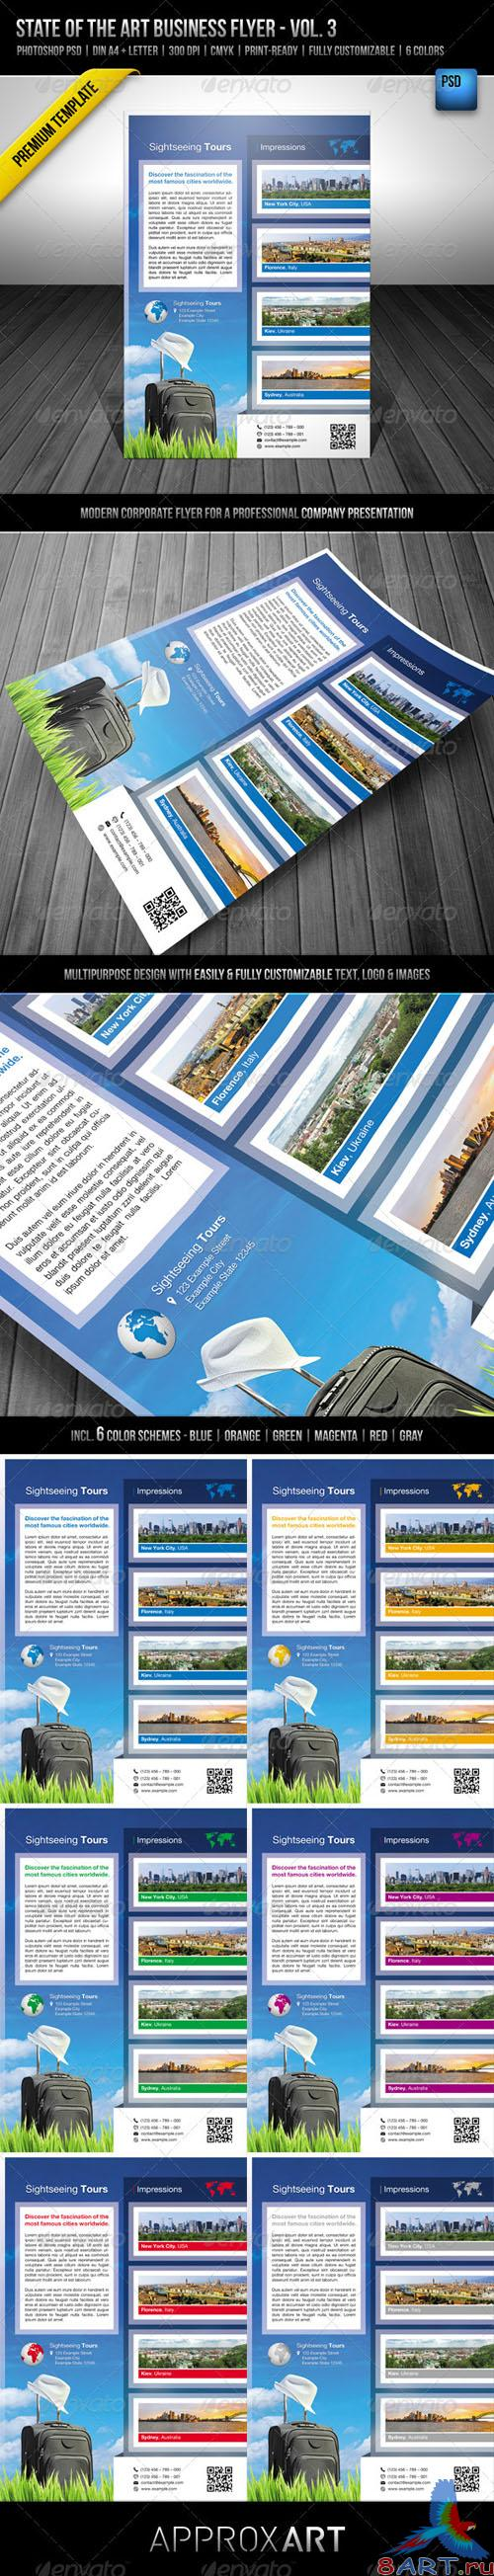 GraphicRiver - State of the Art Business Flyer - Vol 3 - 2714277